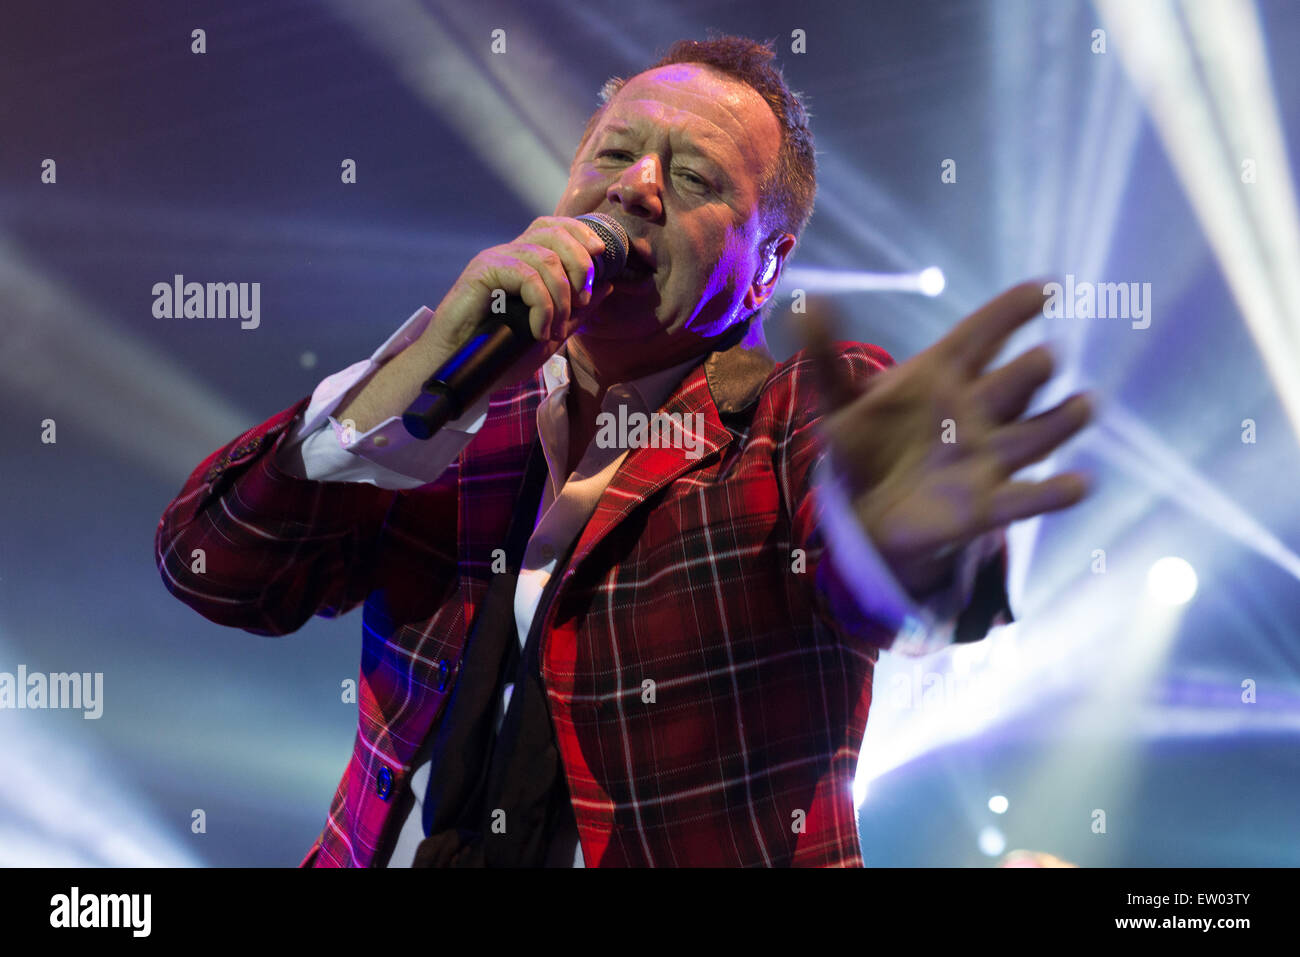 Simple Minds performing live at The Auditorium in Grimsby  Featuring: Jim Kerr Where: Grimsby, United Kingdom When: - Stock Image